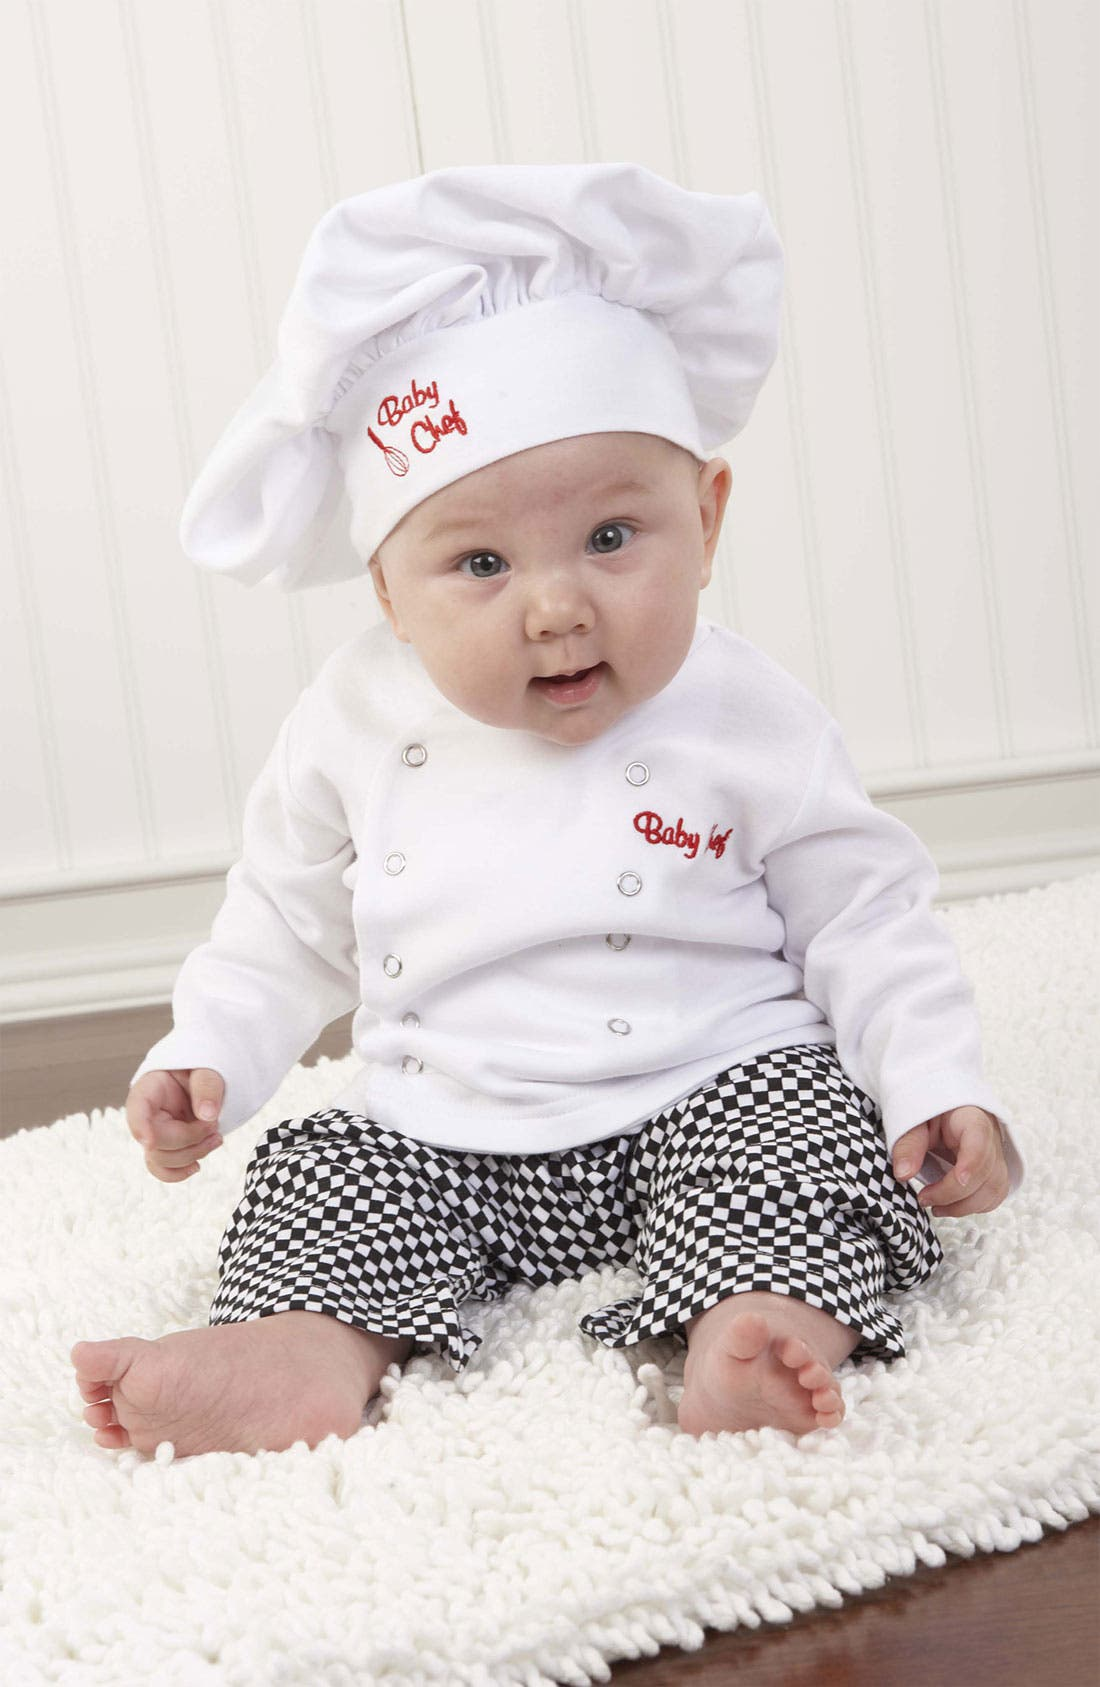 Alternate Image 1 Selected - Baby Aspen 'Big Dreamzzz - Chef' Shirt, Pants & Hat (Baby)